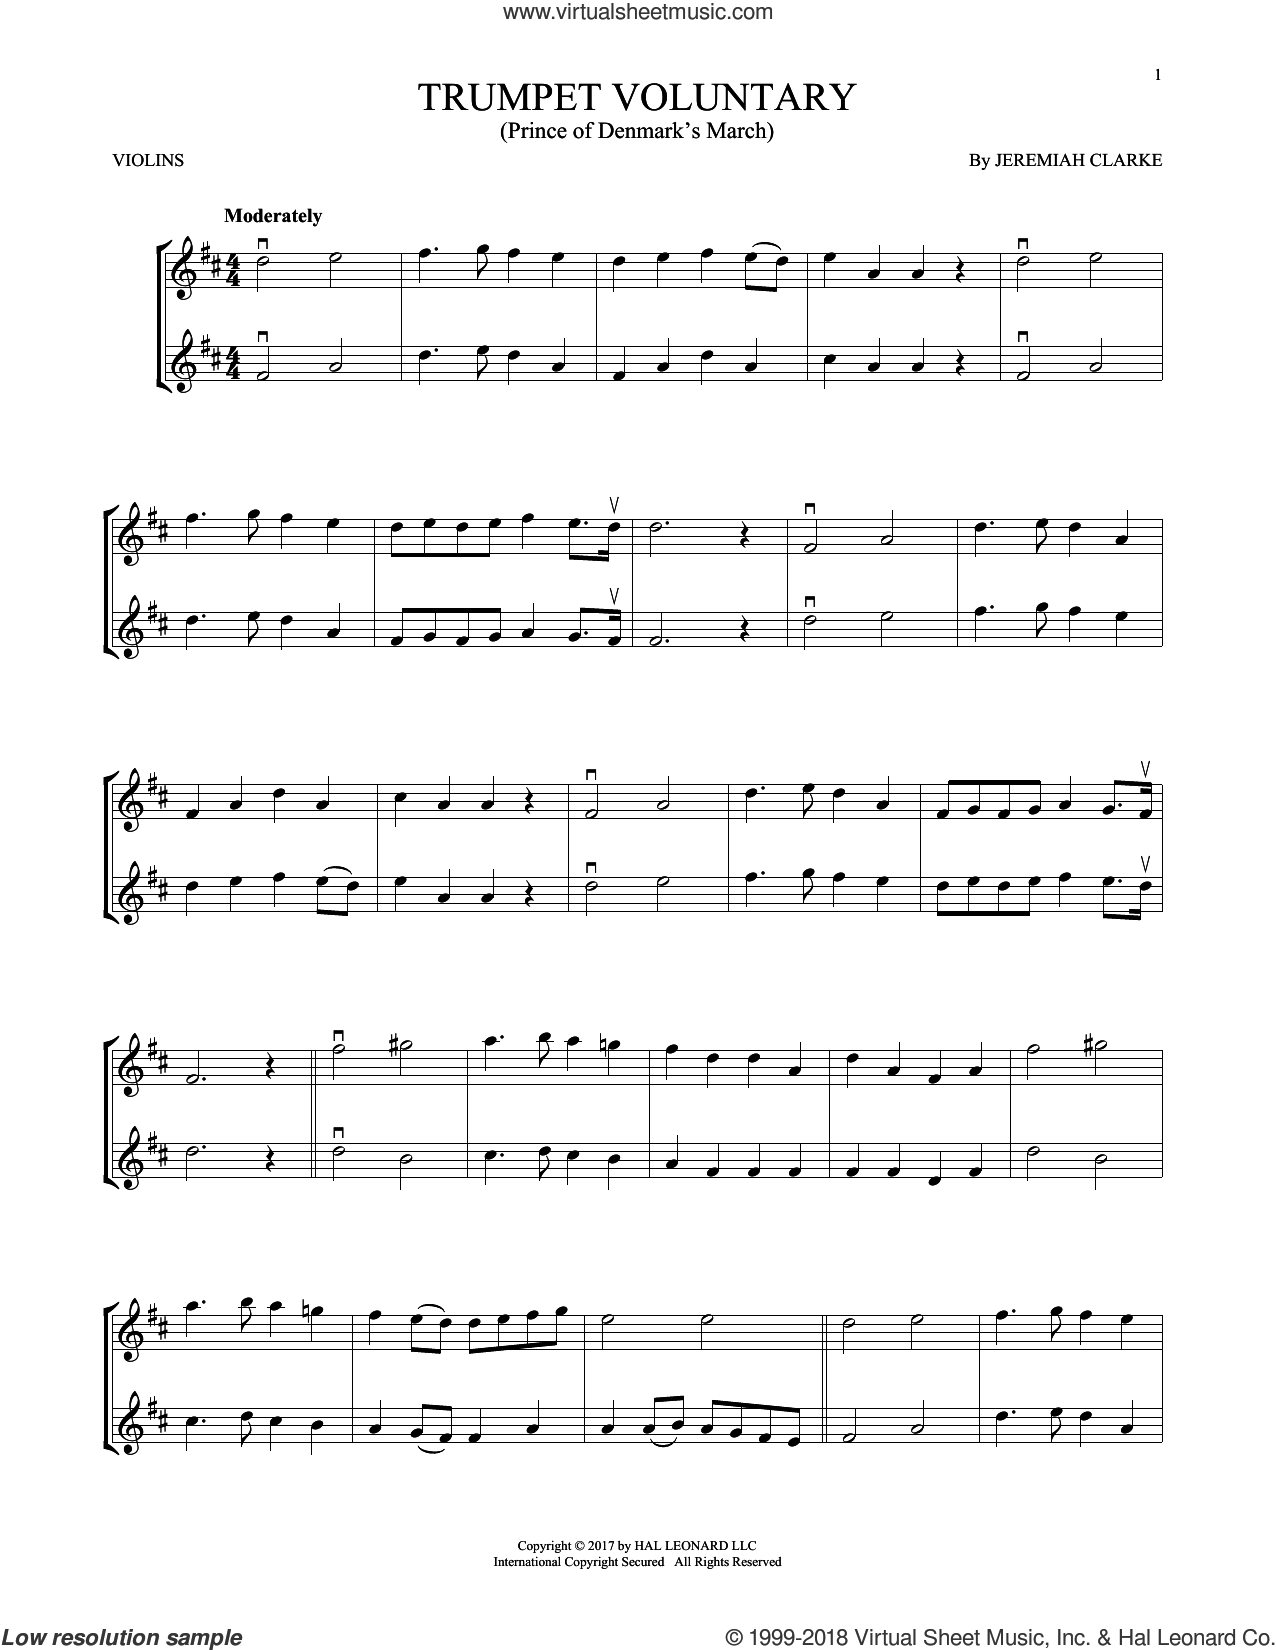 Trumpet Voluntary sheet music for two violins (duets, violin duets) by Jeremiah Clarke, classical score, intermediate skill level